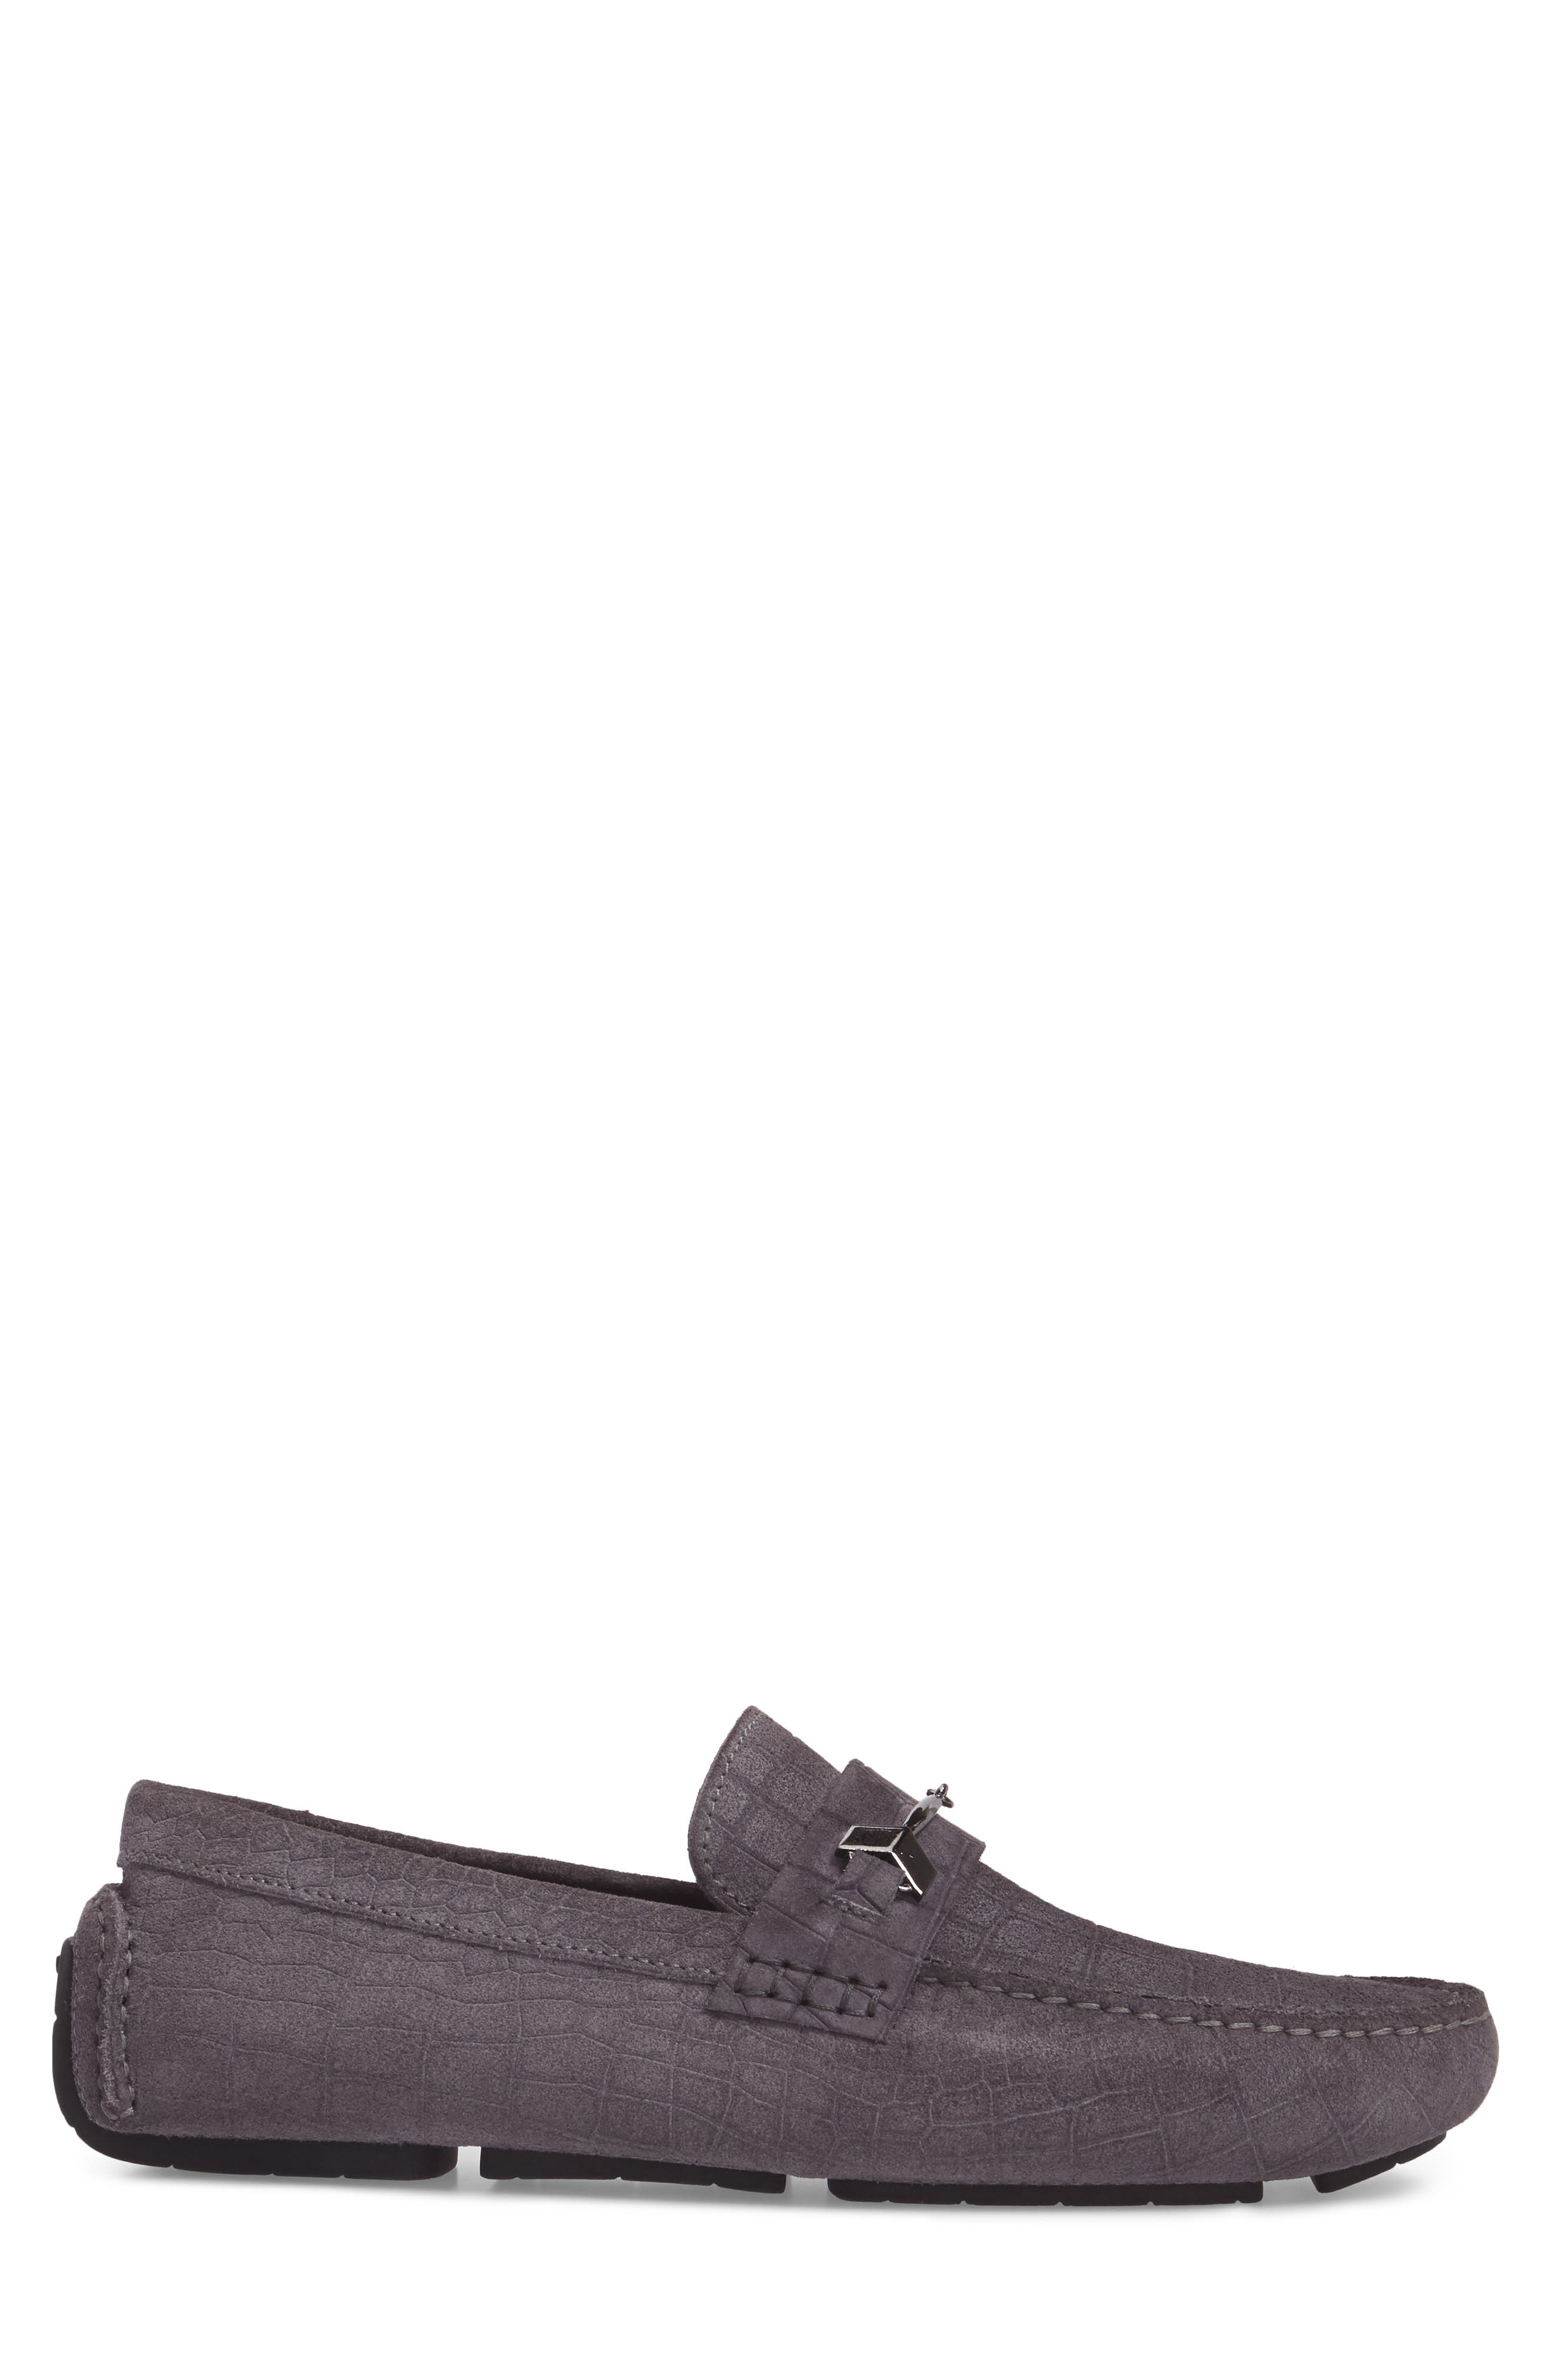 Brewer Croc Textured Driving Loafer,                             Alternate thumbnail 6, color,